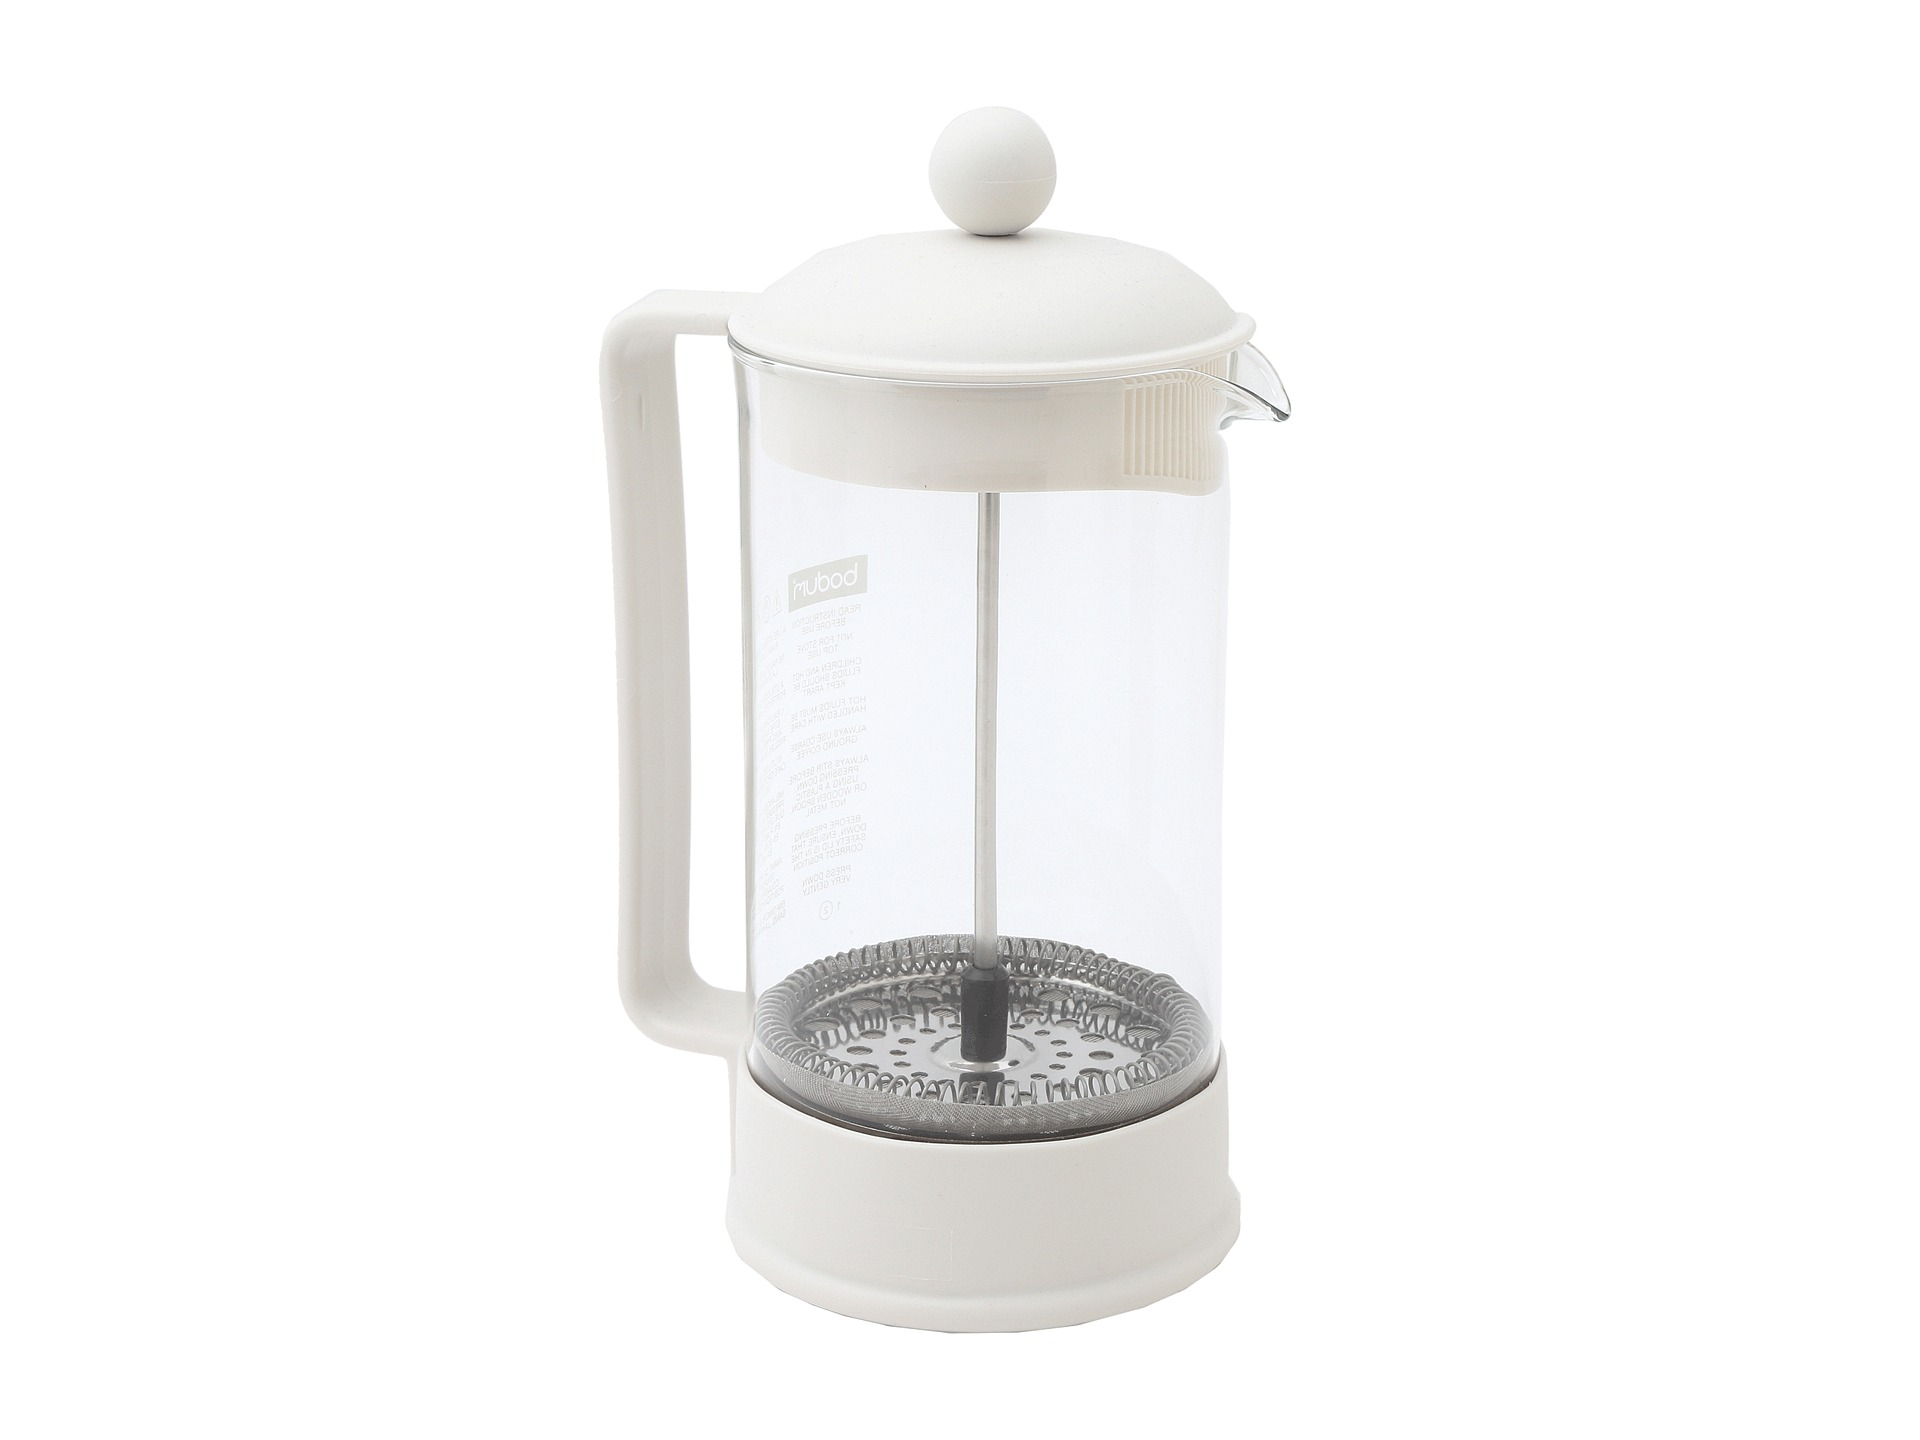 White French Press Coffee Maker : Bodum Brazil French Press Coffee Maker 34 Oz White Shipped Free at Zappos